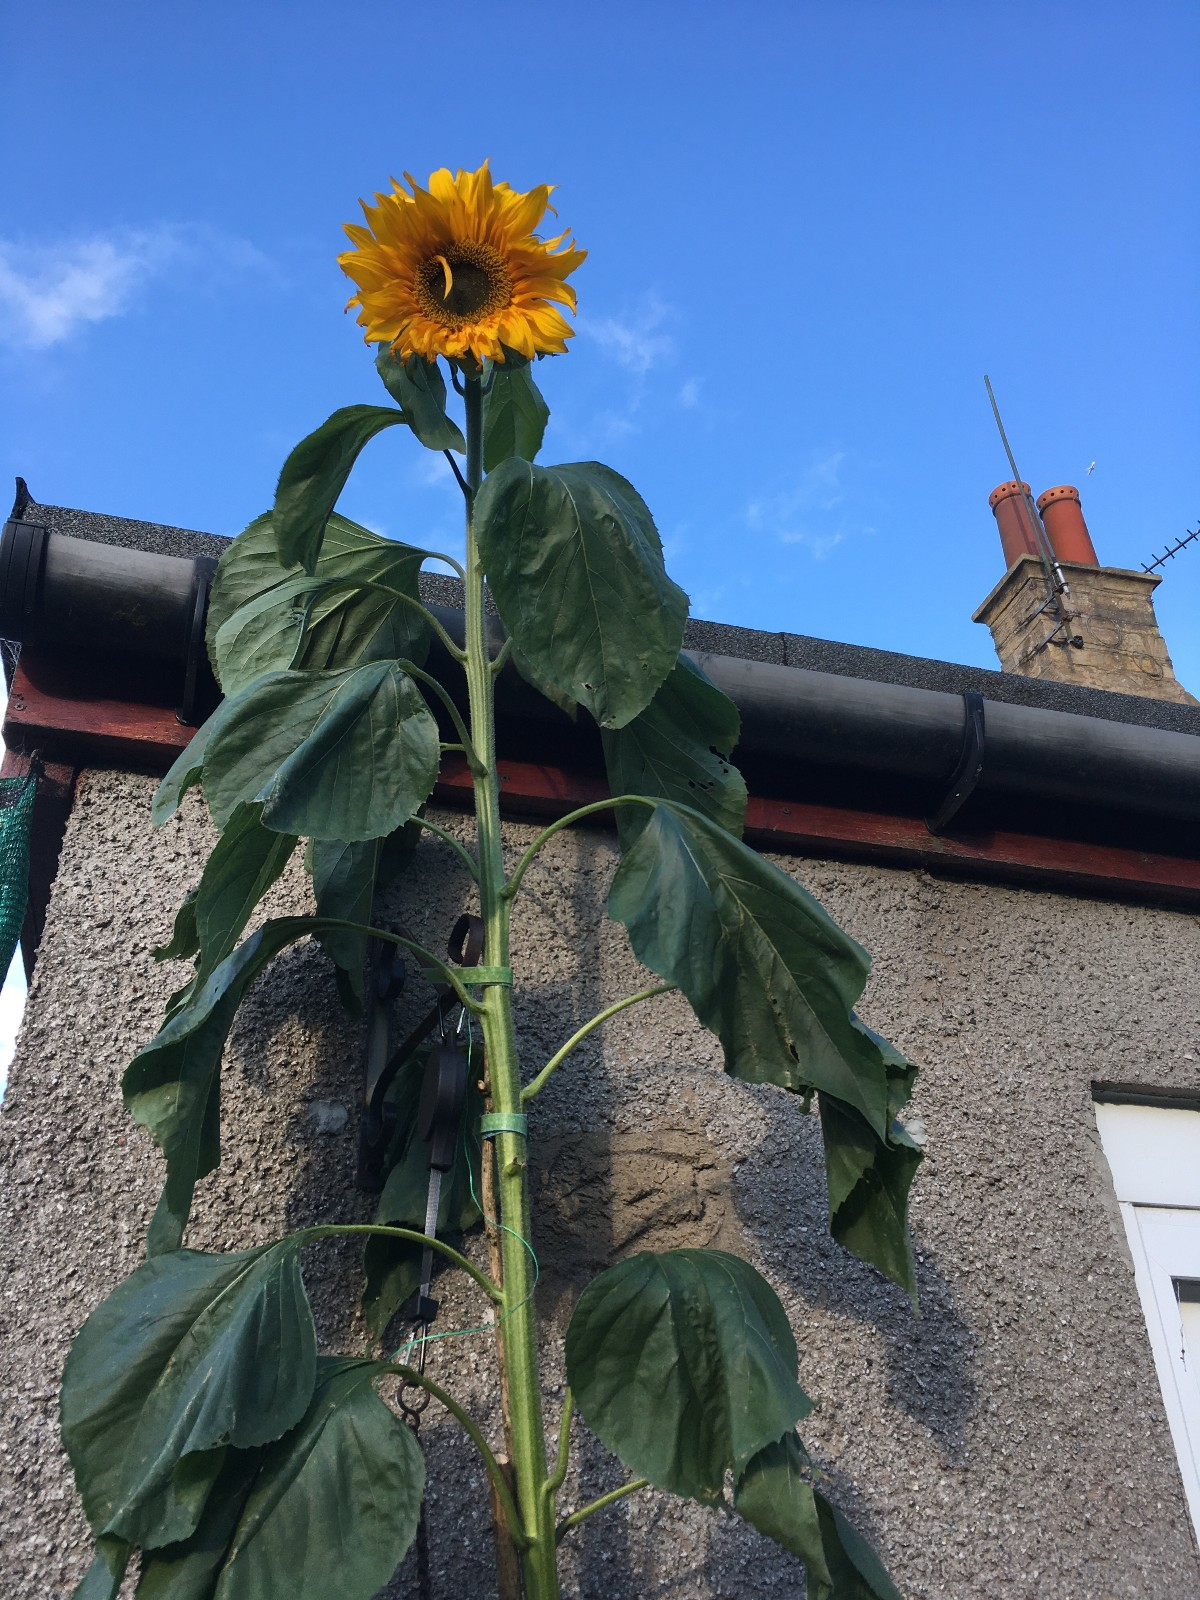 Tall sunflower against a bright blue sky